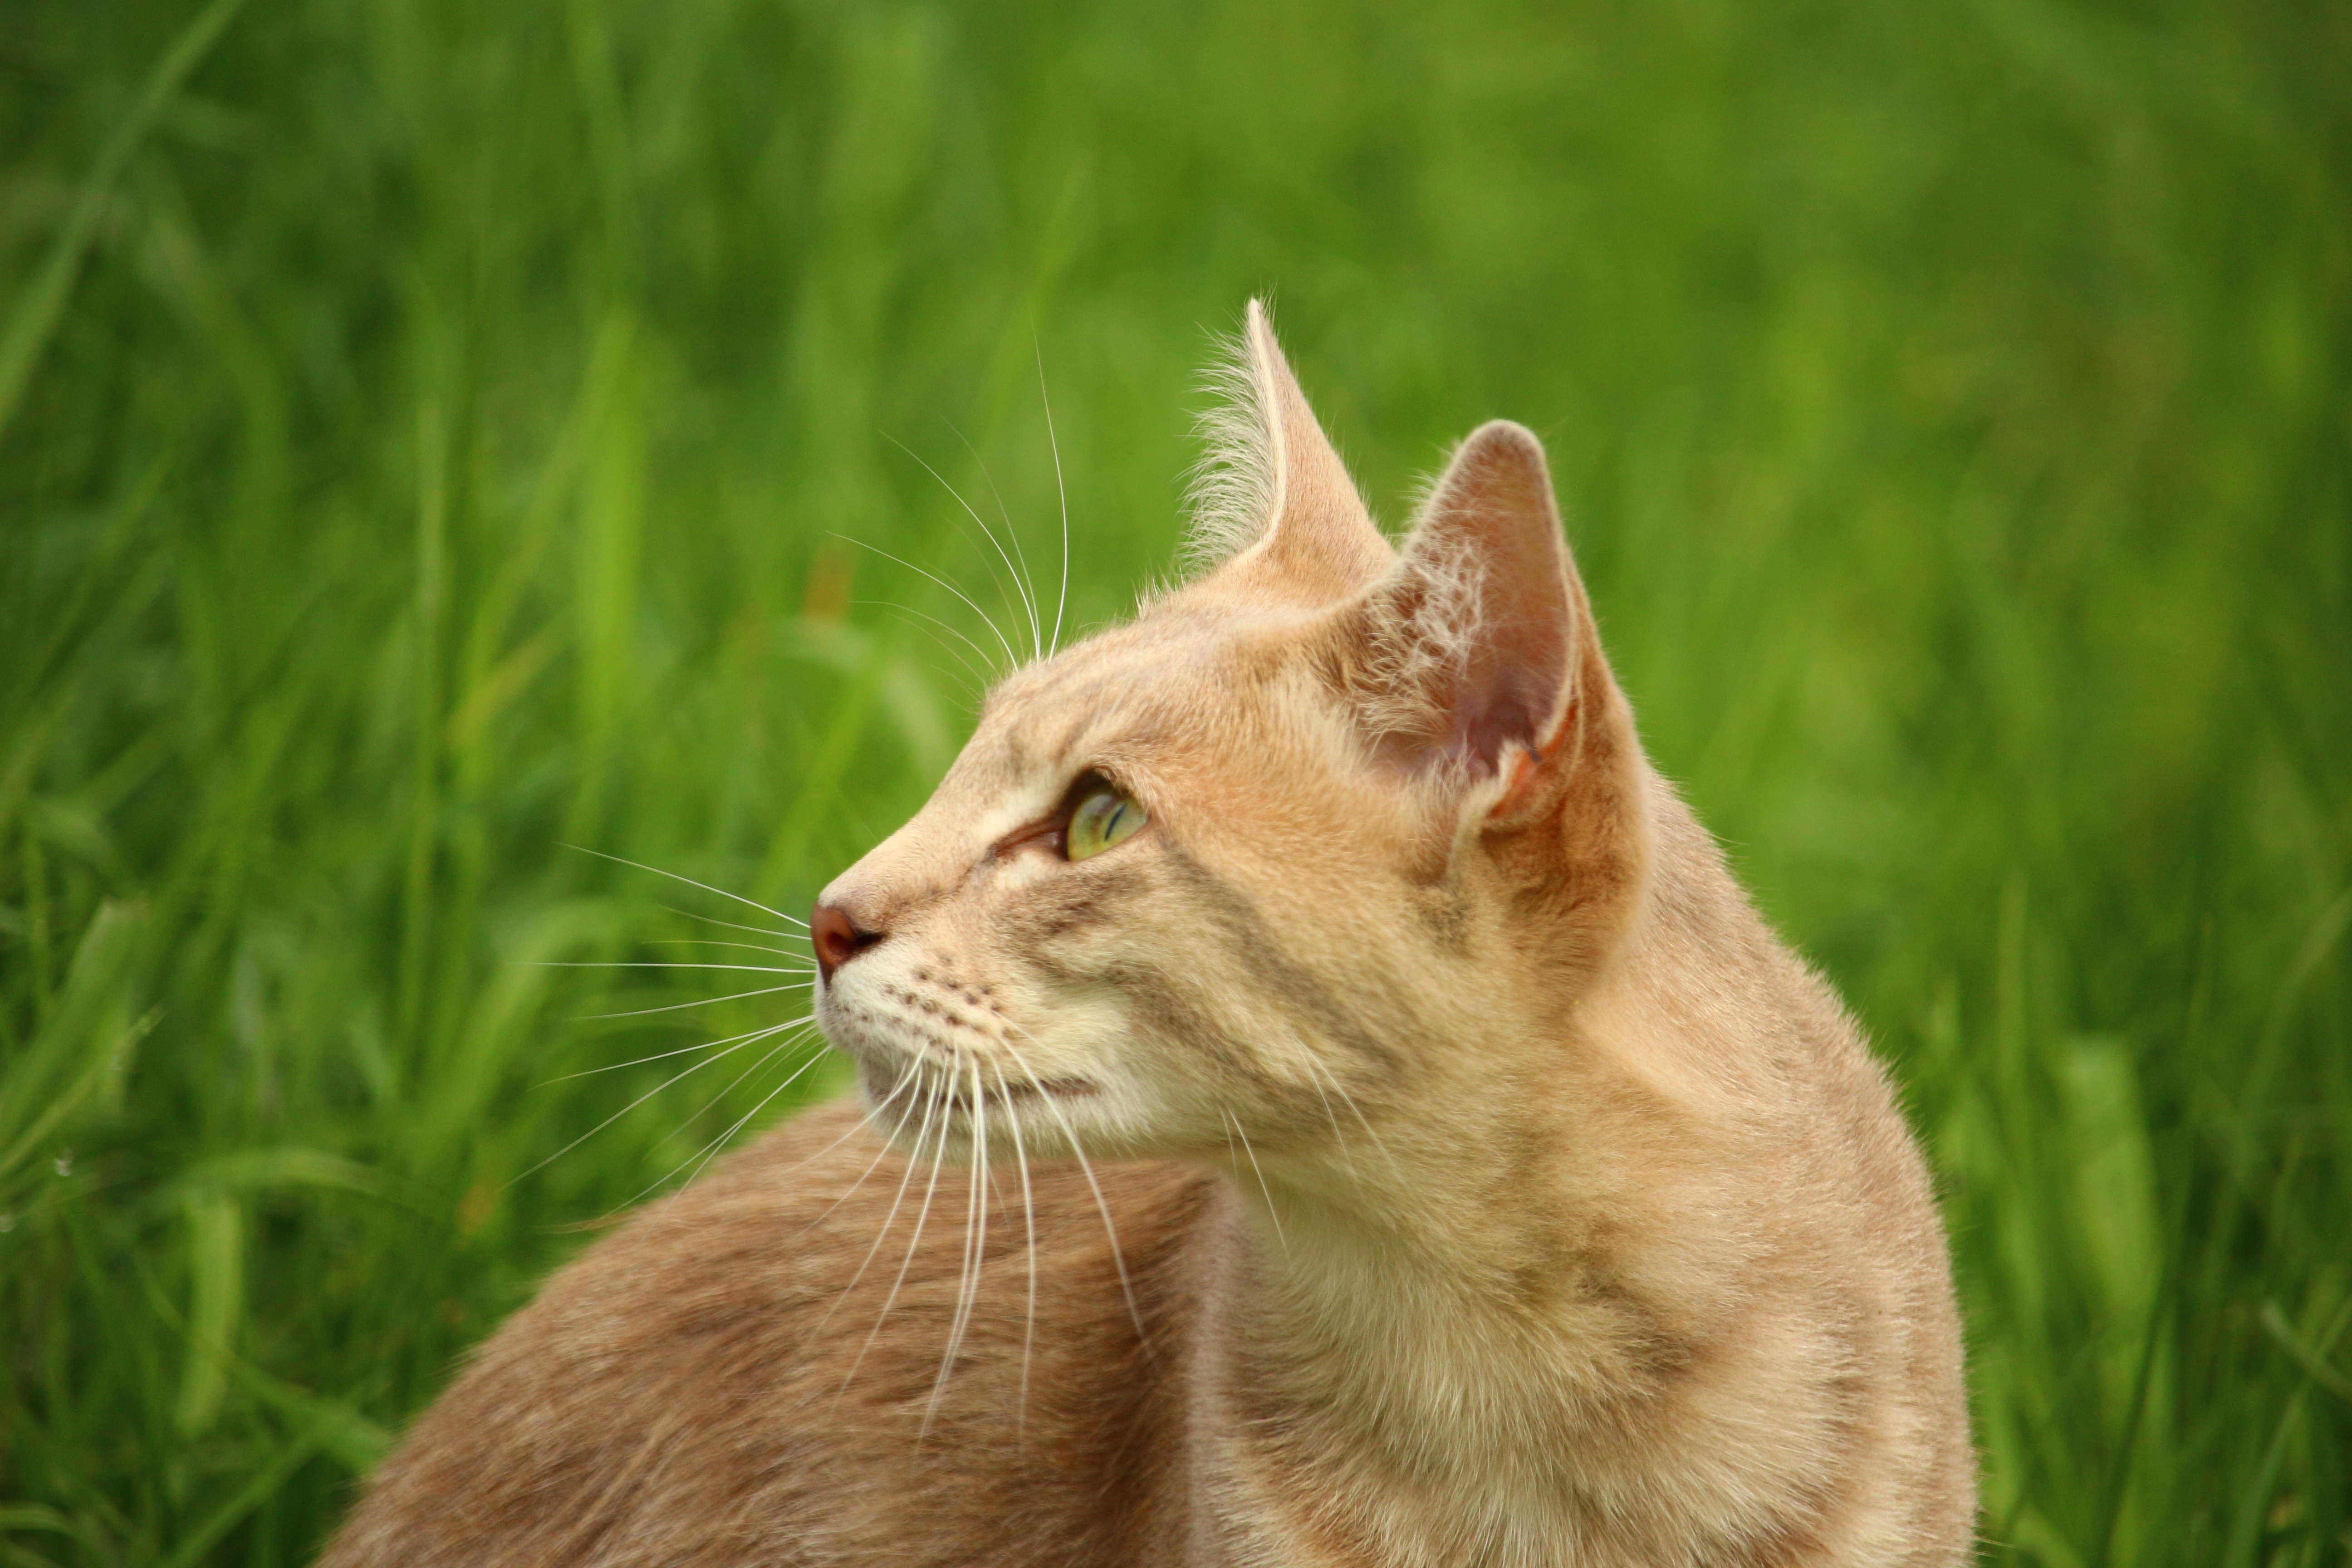 Cute Animal Wallpapers Free Download Tan Cat Beside Green Grass During Daytime 183 Free Stock Photo